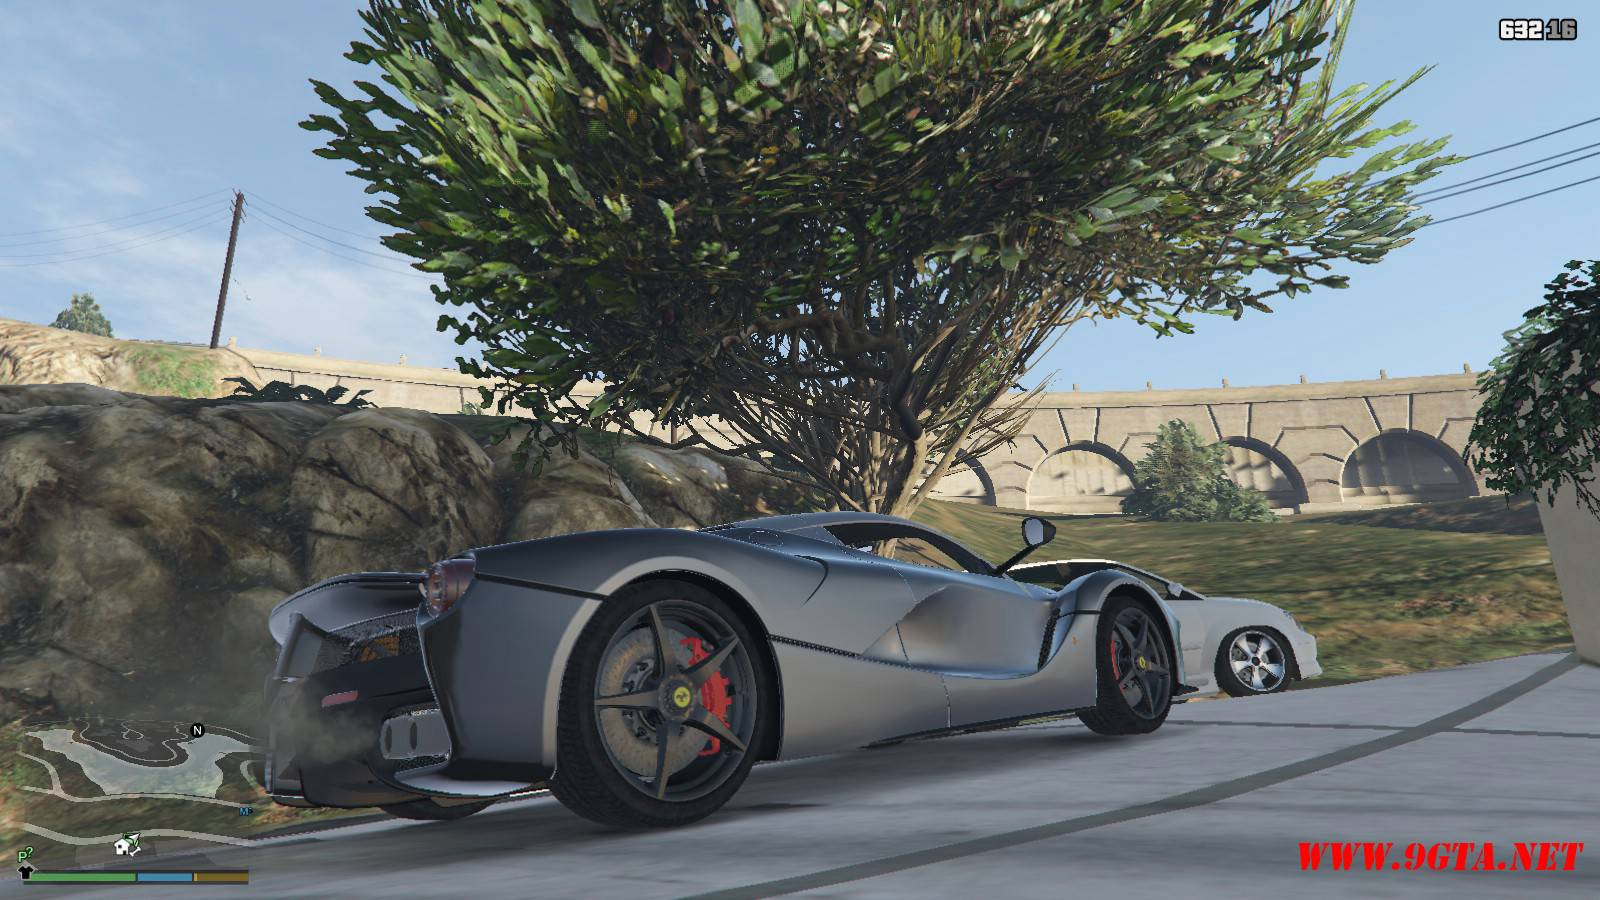 2015 Ferrari LeFerrari Mod For GTA5 (7)